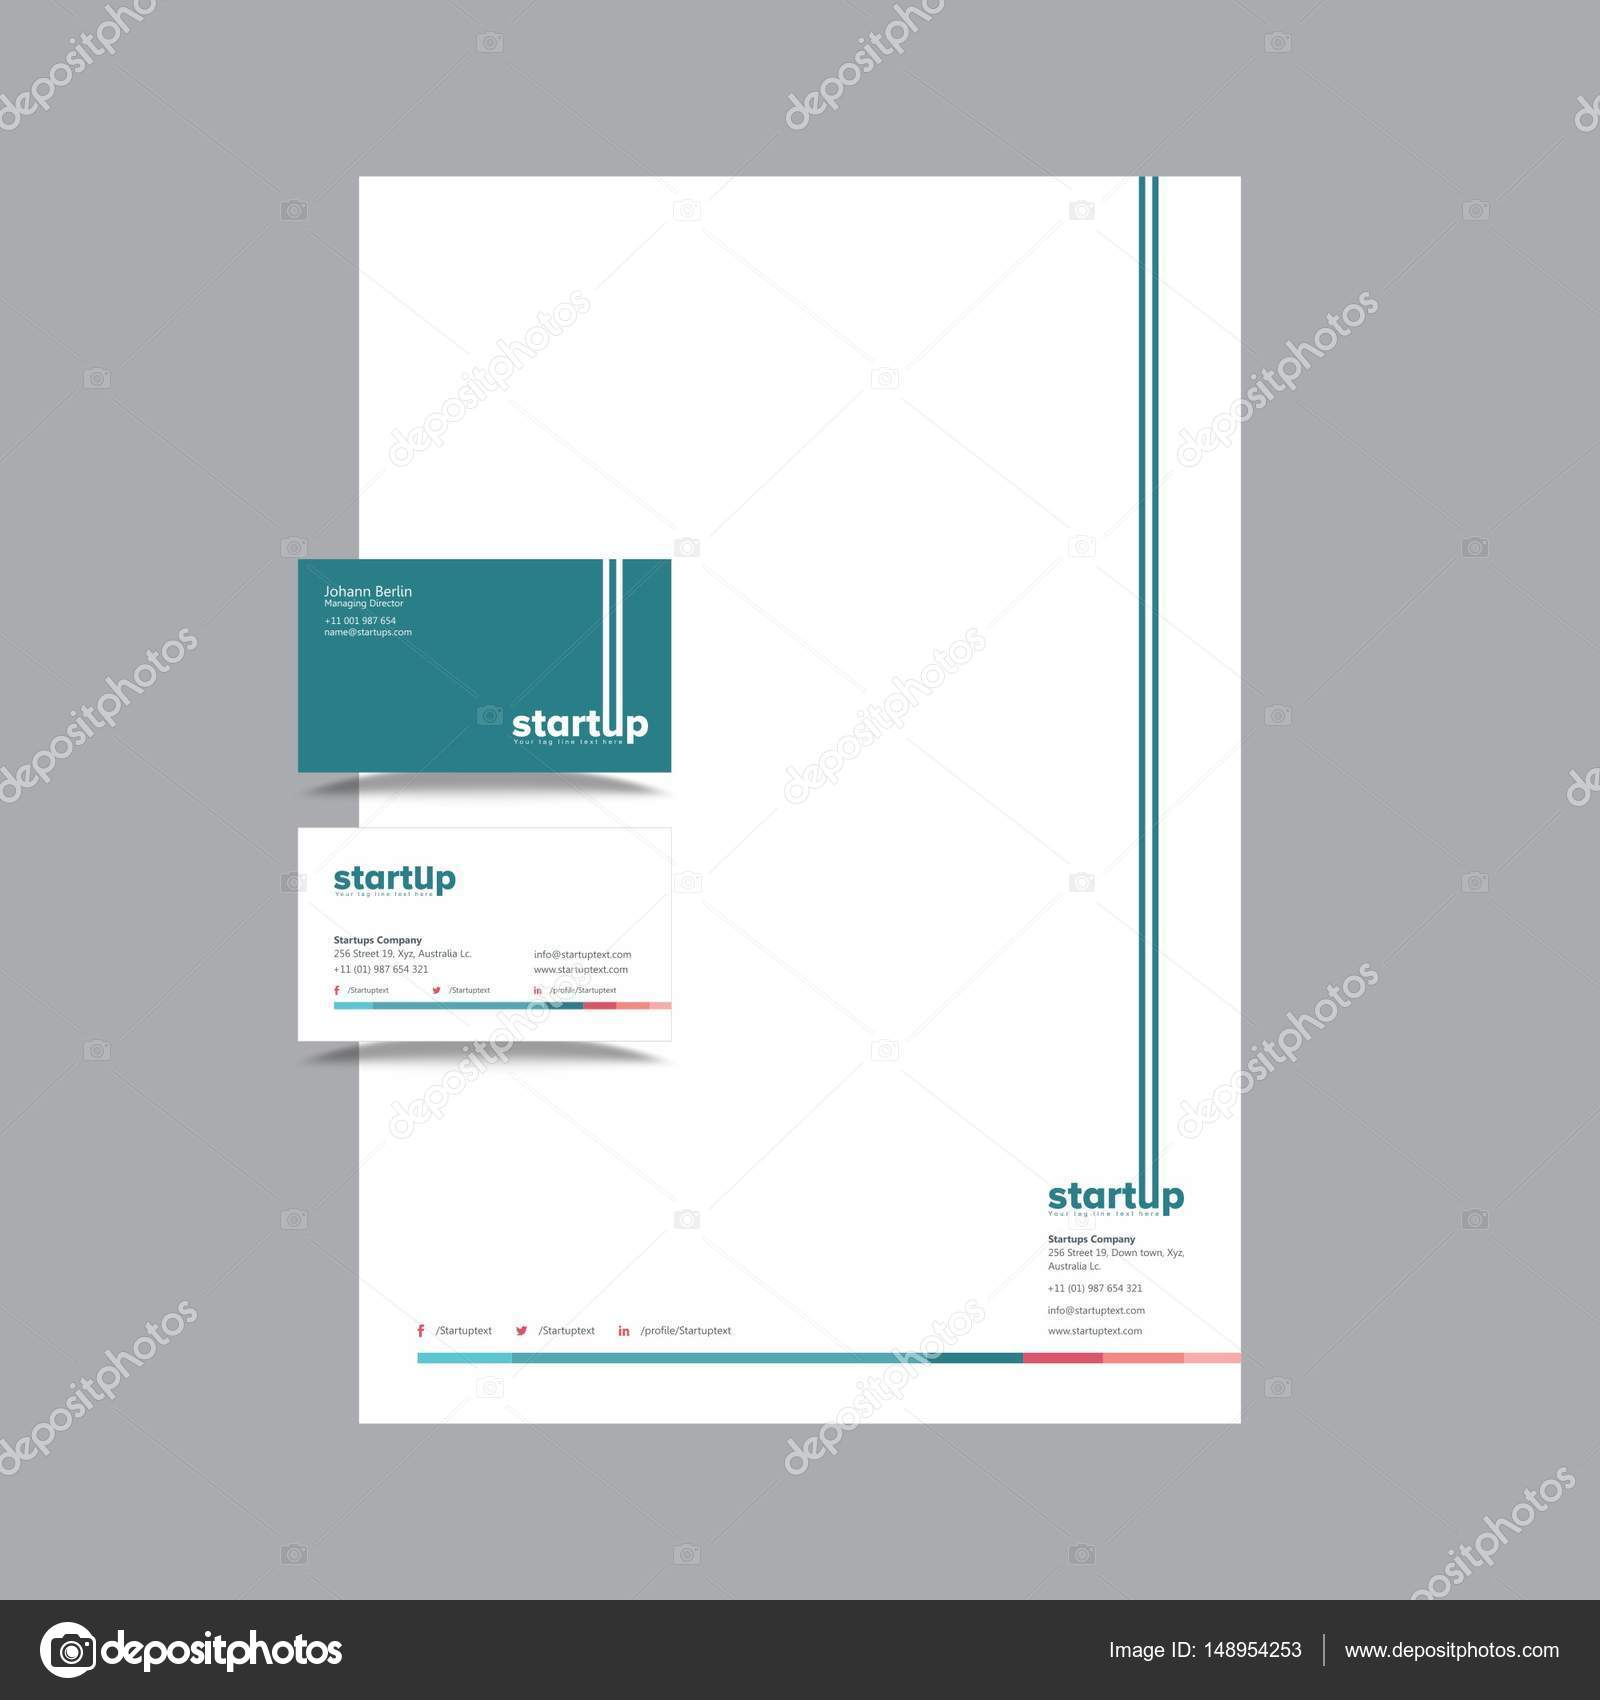 Startup Company Business Card and letterhead Design — Stock Vector ...